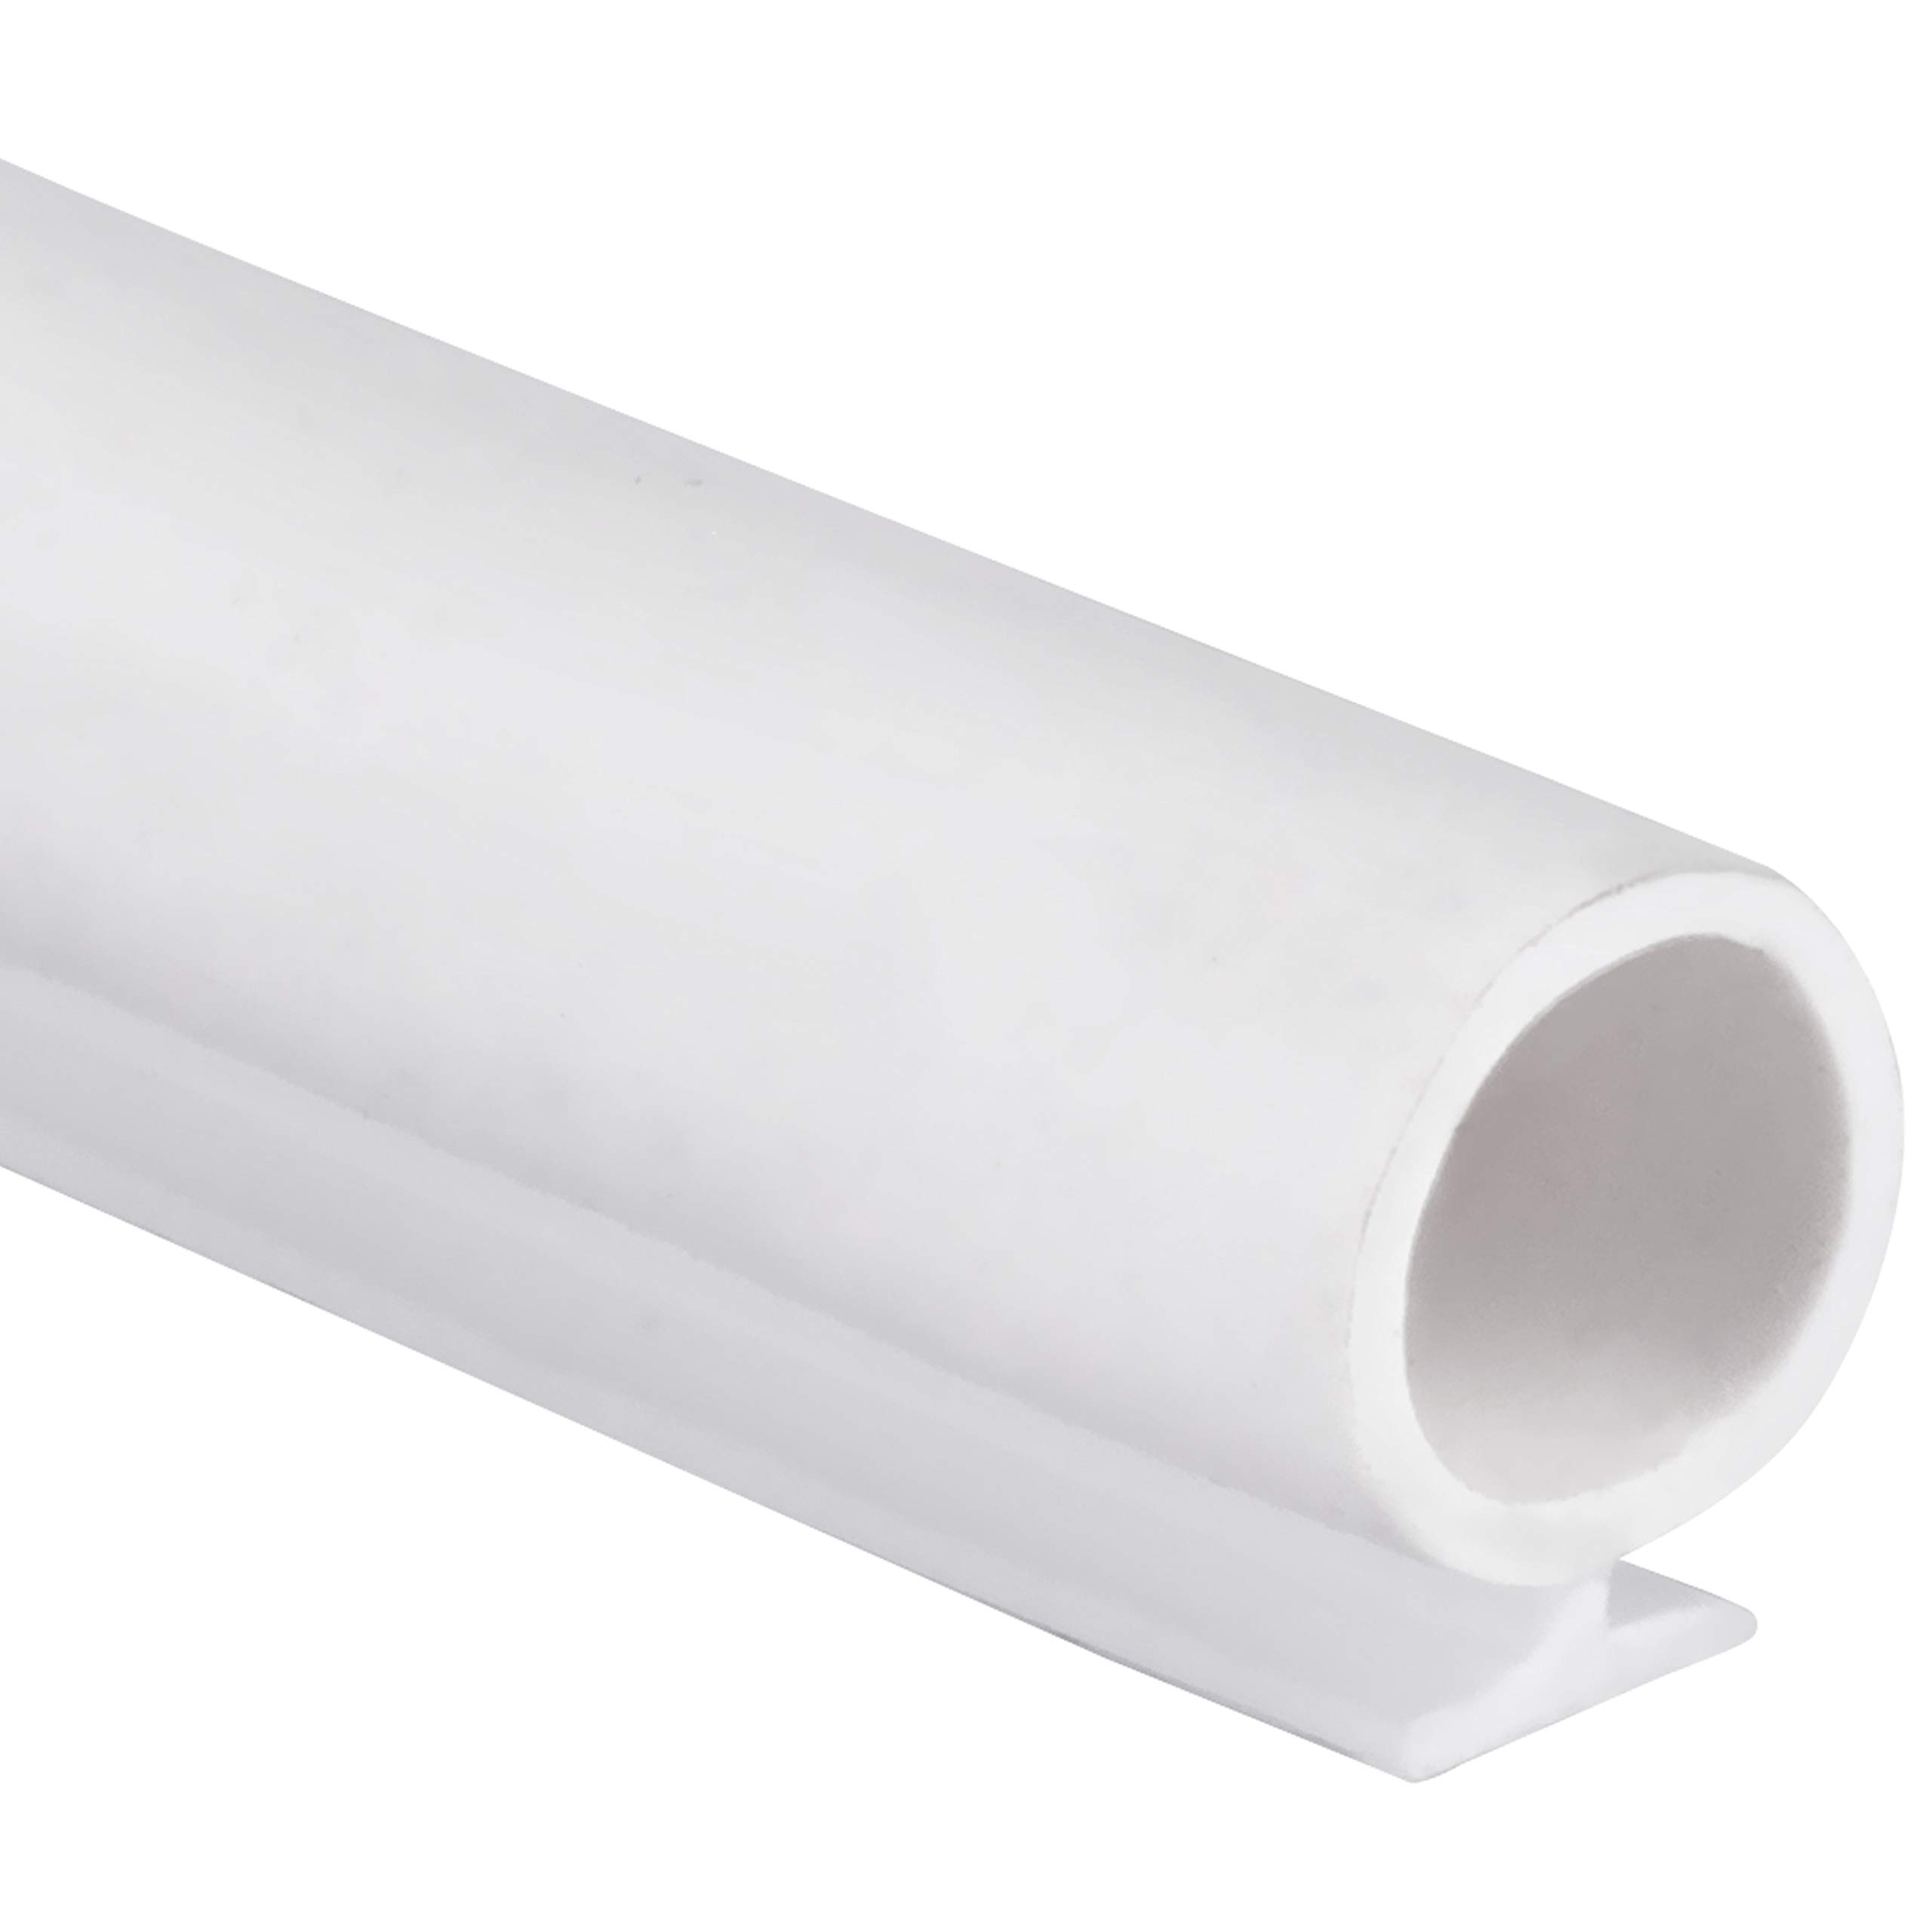 "T-Slot Mount Window Weatherstrip Seal 5/16"" Bulb Bubble for 3/16"" Slot Receptacle 3 Colors & 5 Length Options (50', White)"